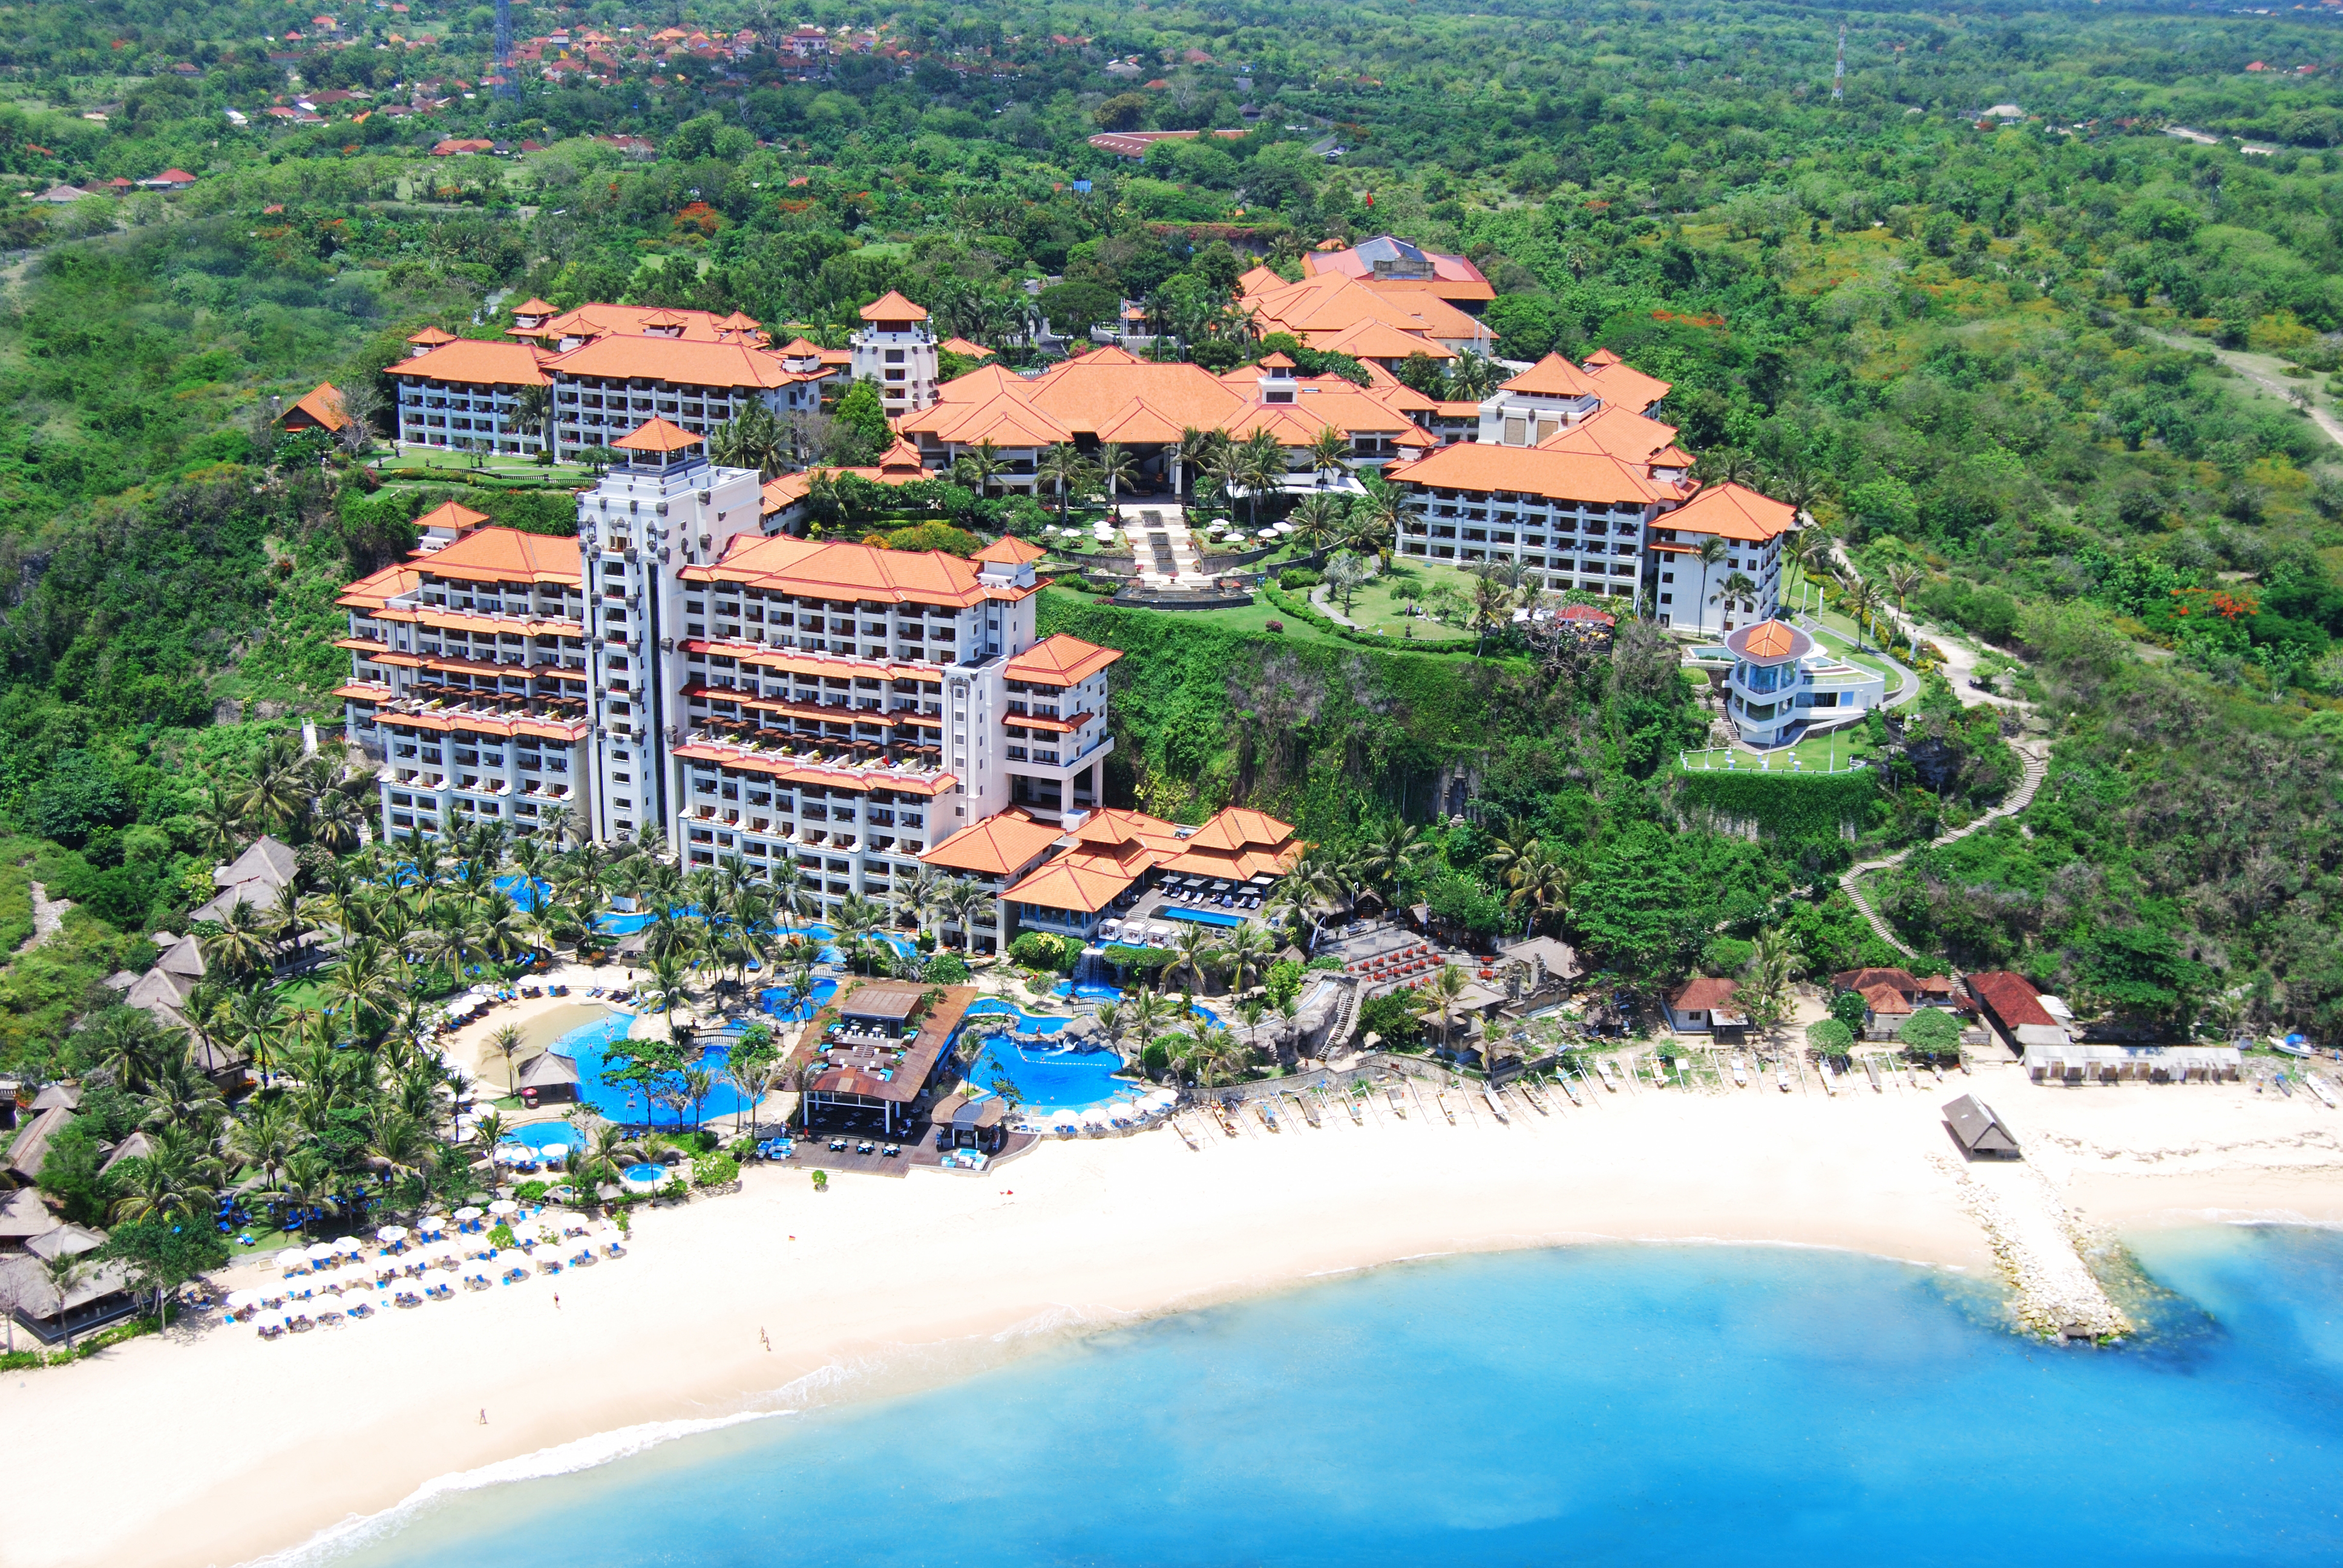 Hilton Hotels Resorts Debuts In Bali With Stunning Cliff